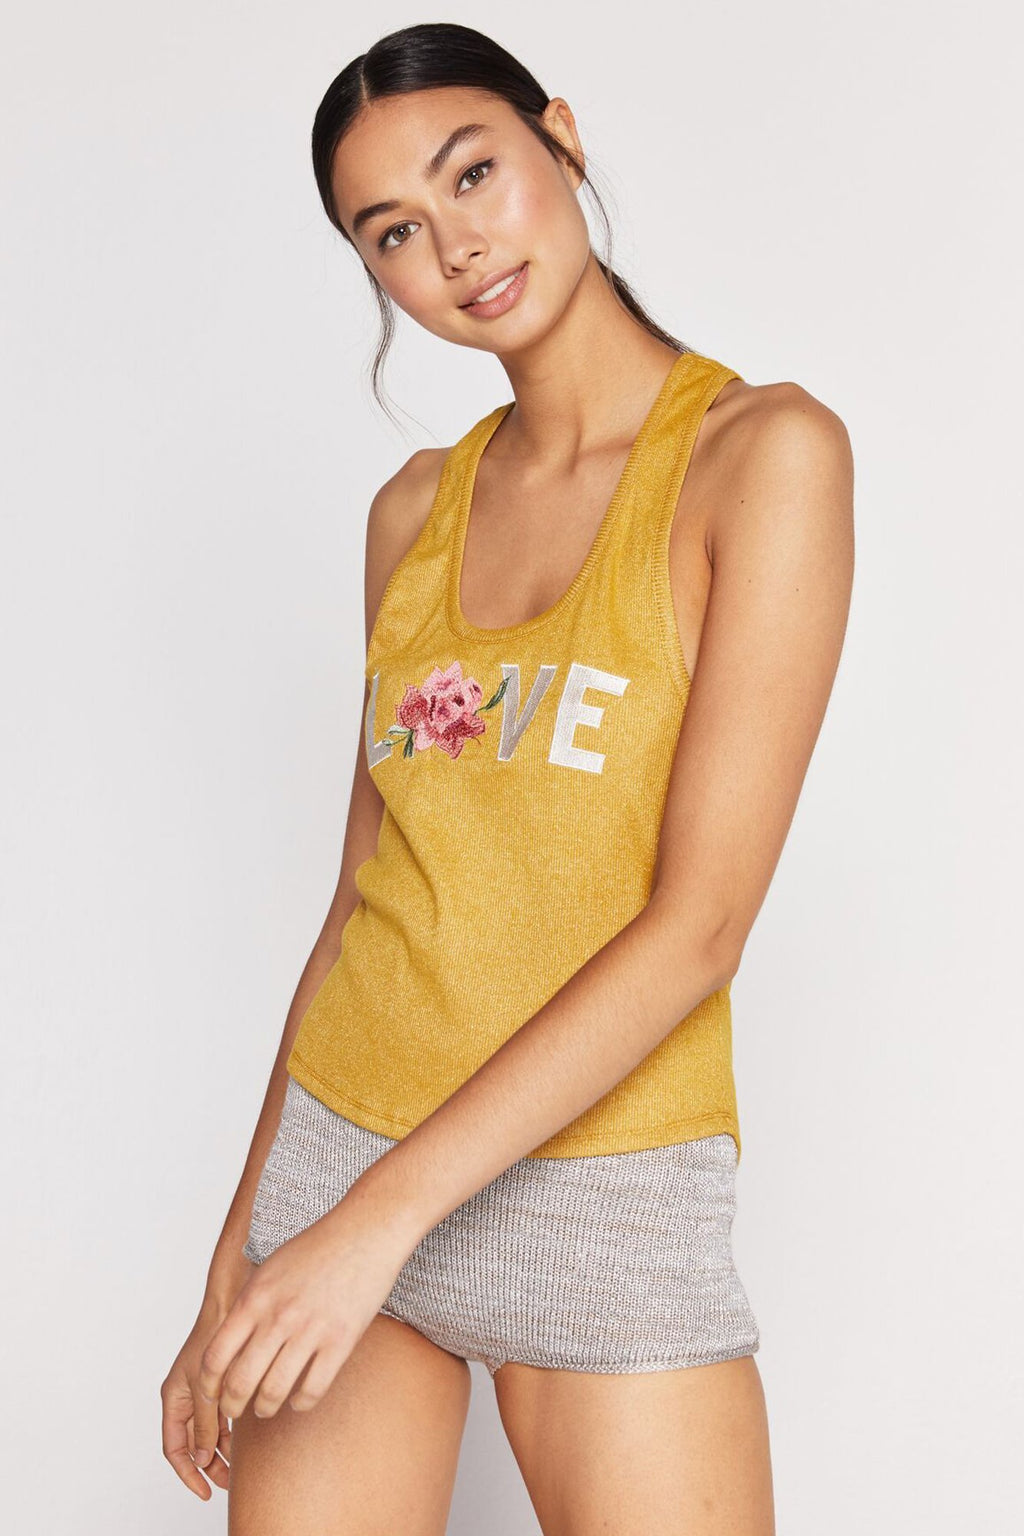 "Model is wearing a yellow scoop neck spiritual gangster tank top. Love floral sparkle tank comes with sparkle detailing throughout and script that reads ""love"". The o in the word ""love"" is a rose with leaves."